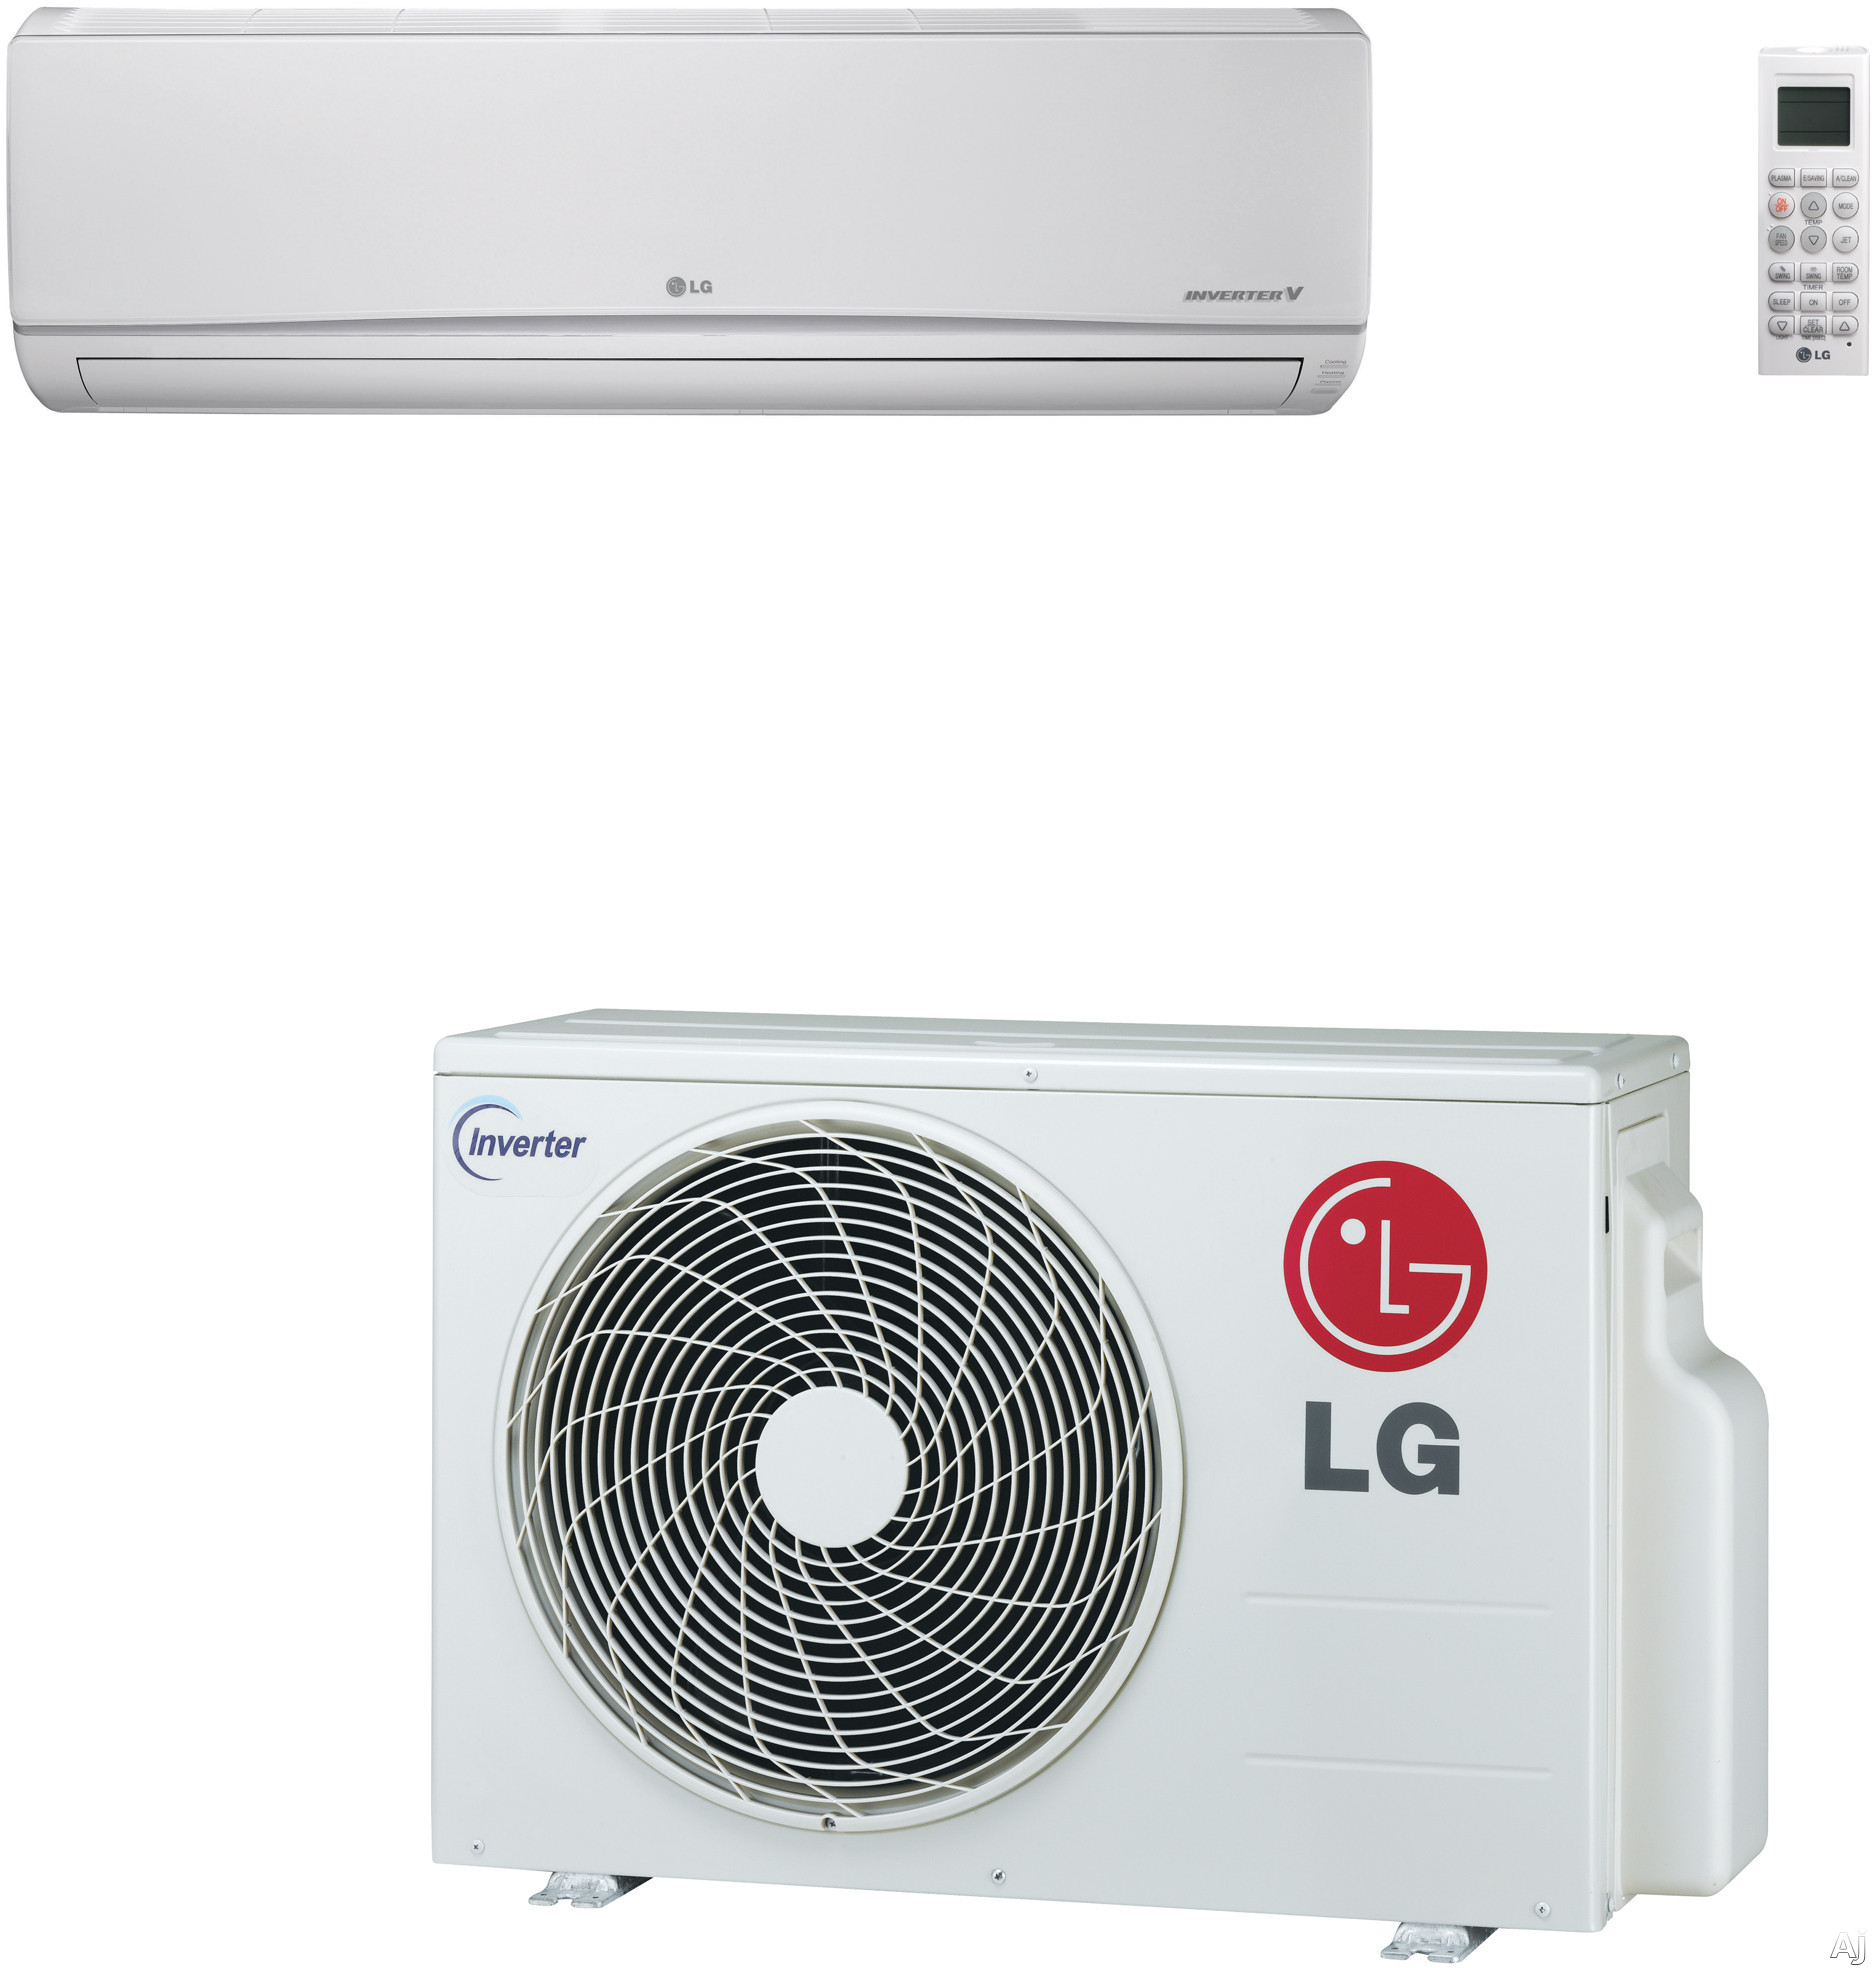 #AA2131 LG LS180HEV 17 000 BTU Mega Single Zone Wall Mount  Brand New 6601 Split Ductless System images with 1872x1968 px on helpvideos.info - Air Conditioners, Air Coolers and more